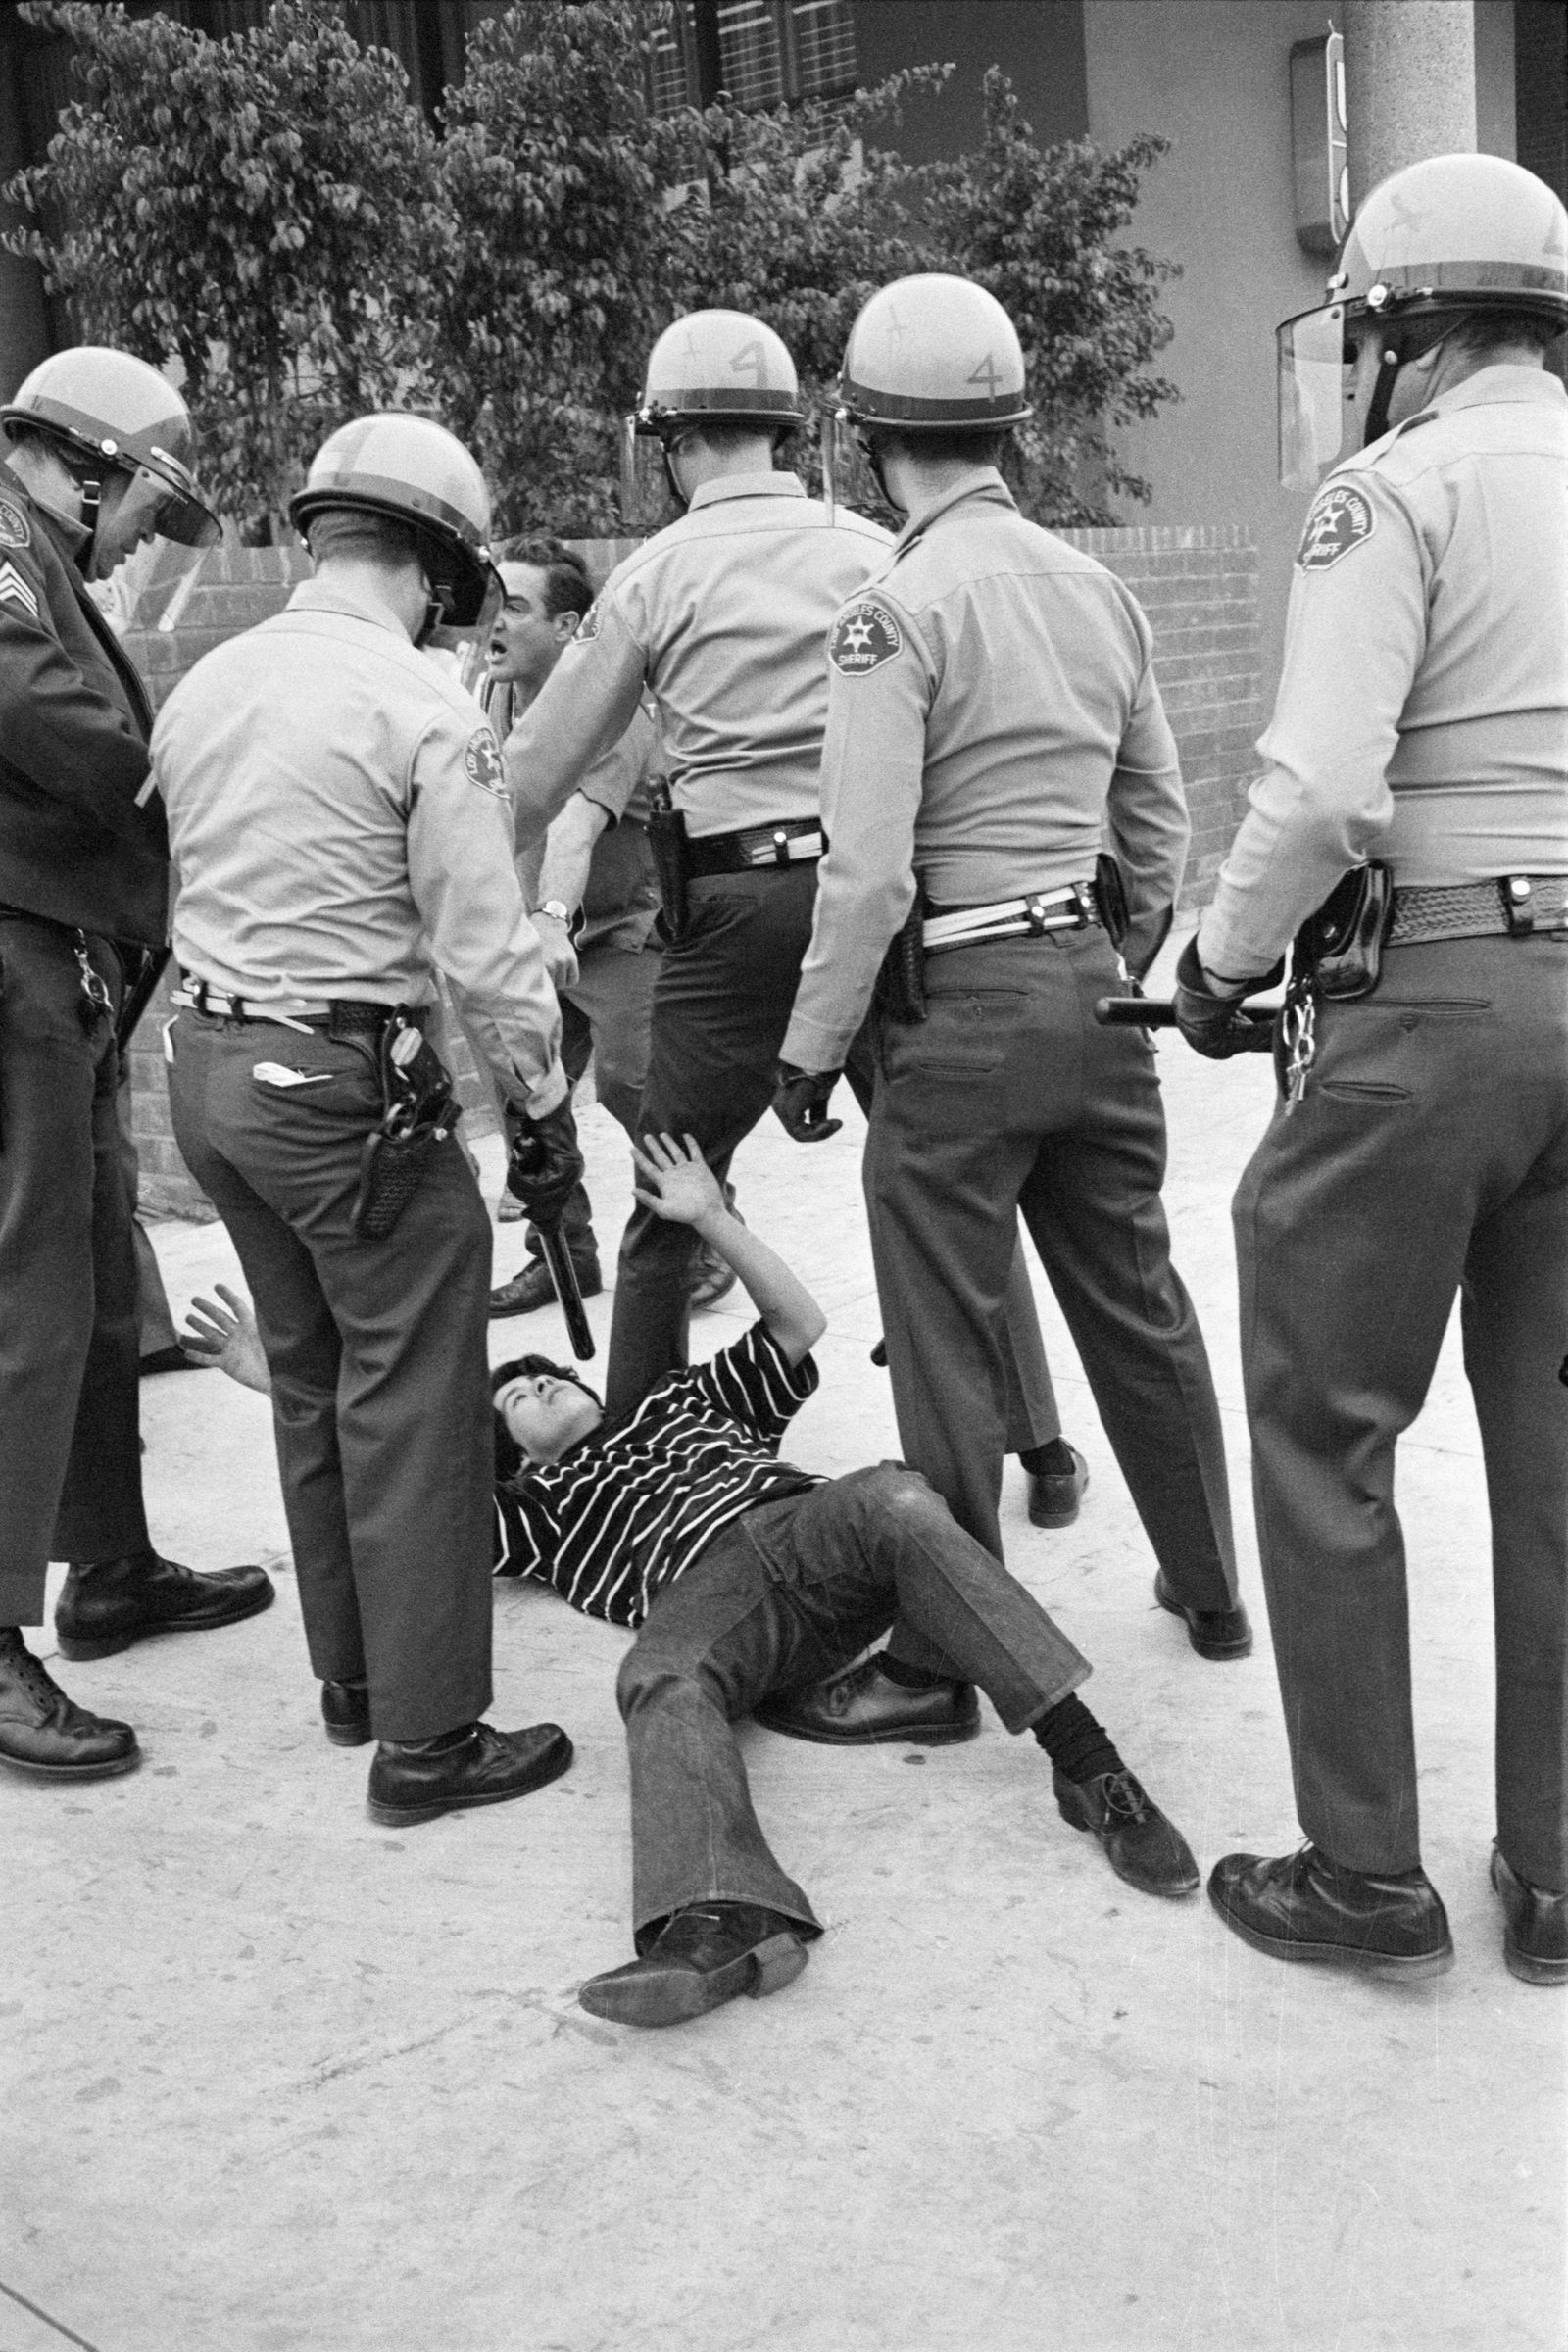 Police Subdue Young Latino Protester